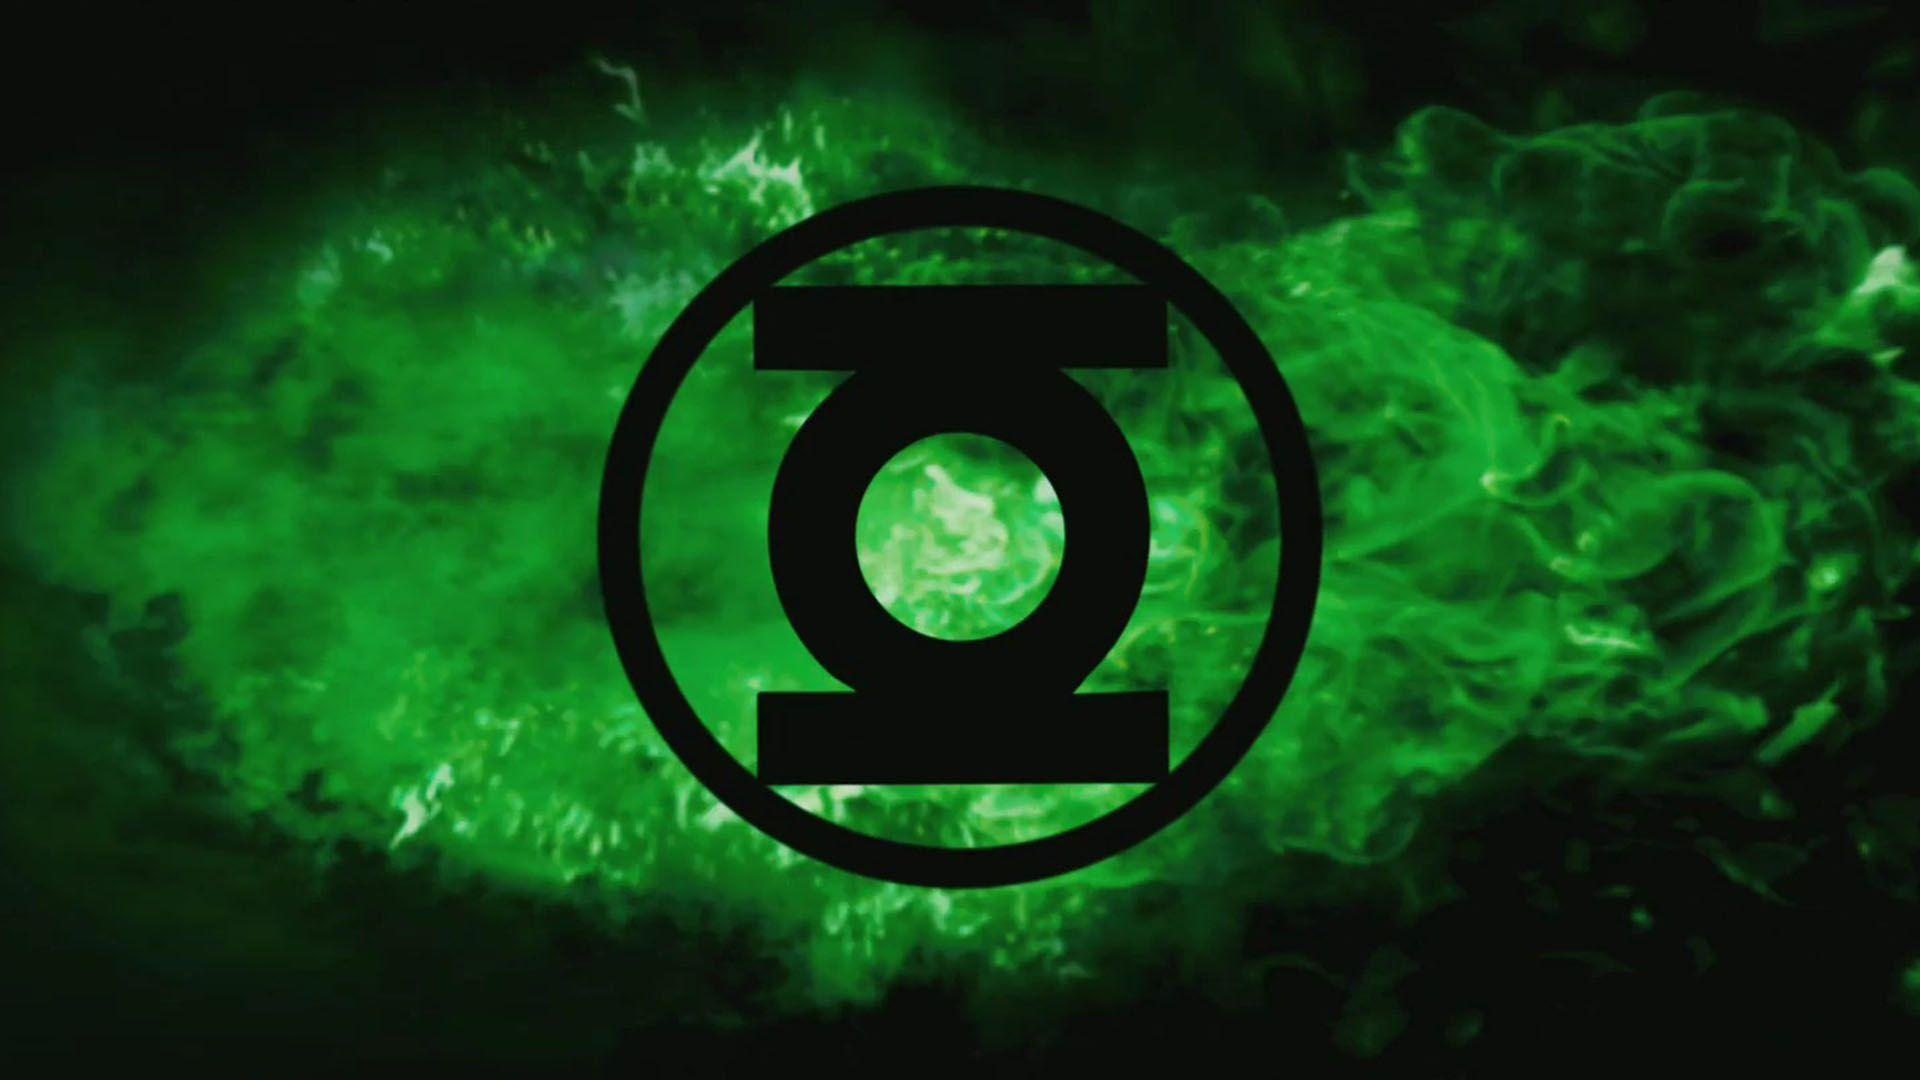 Green Lantern Wallpapers - Wallpaper Cave